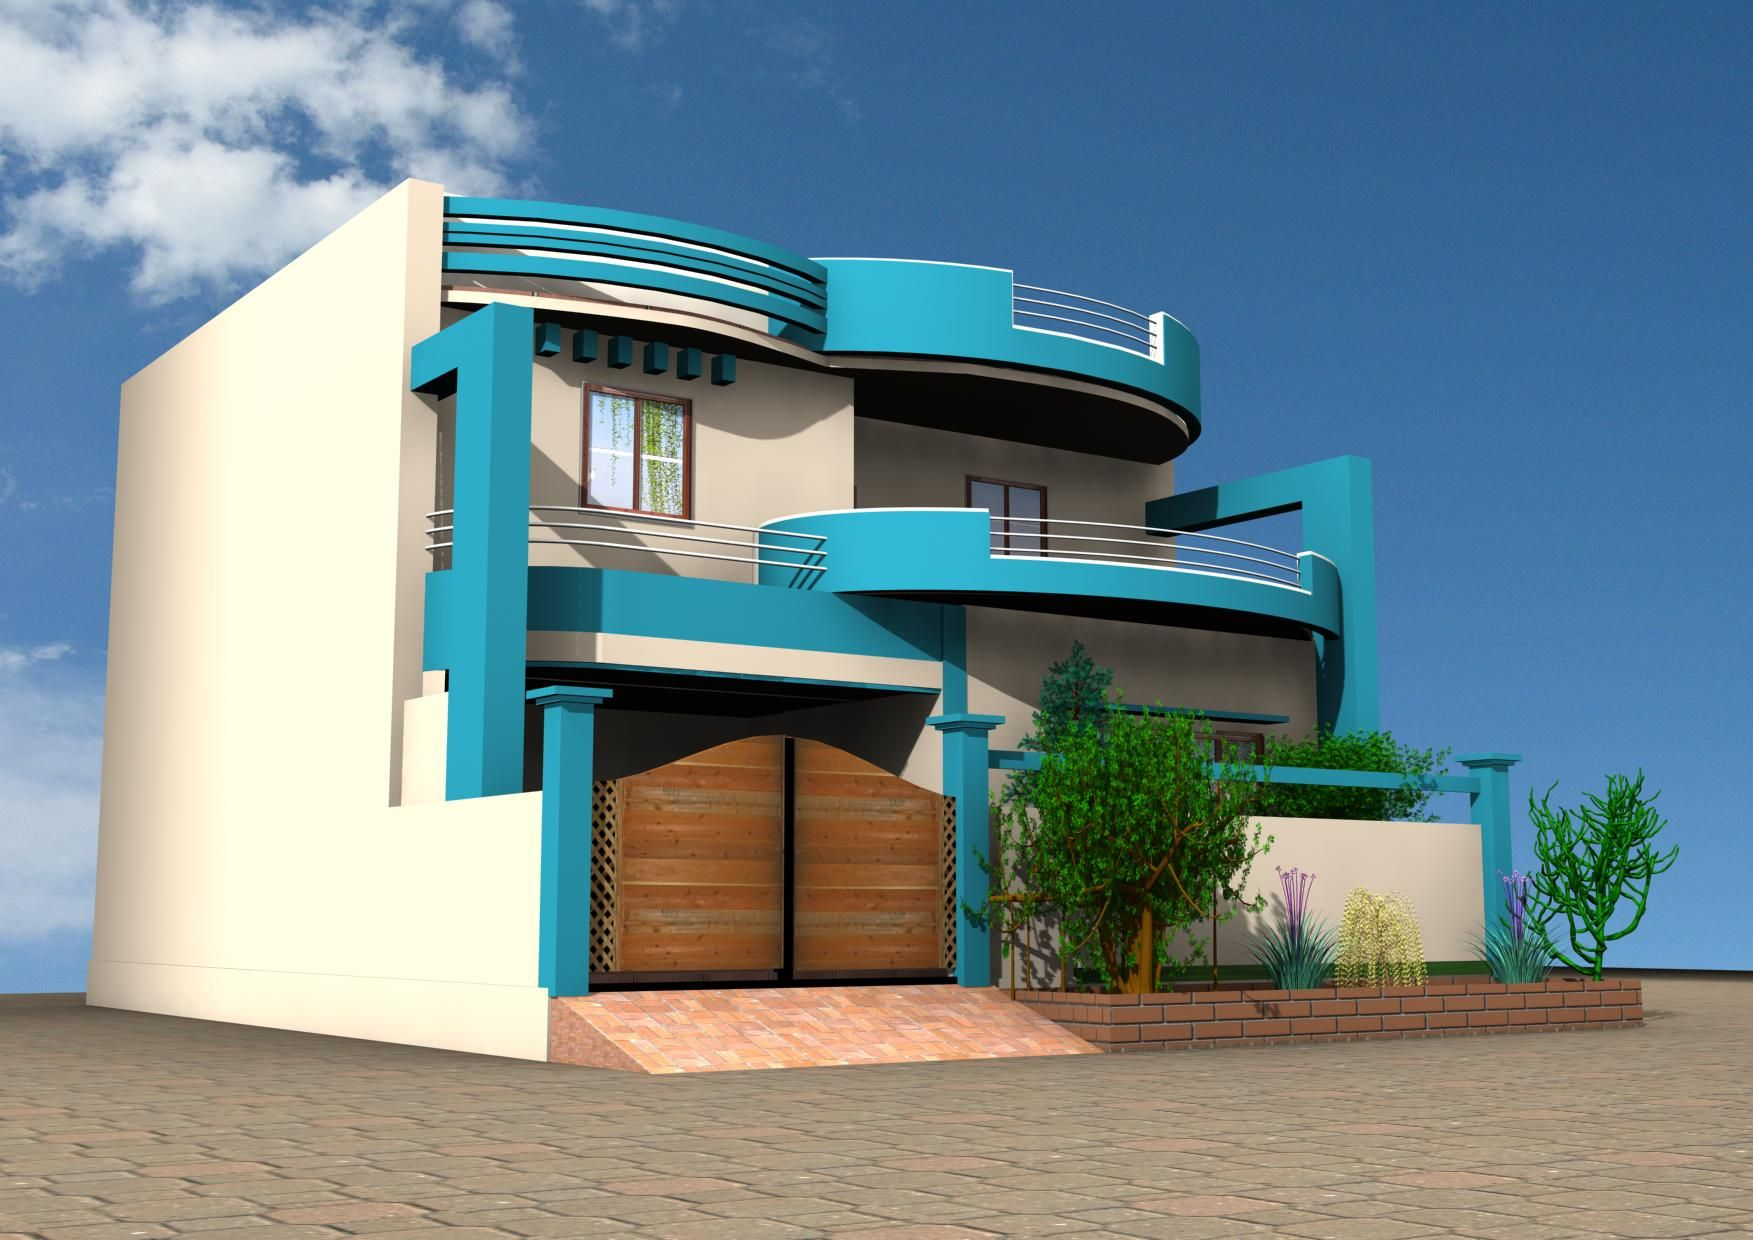 3d home design images hd 1080p 3d architecture software